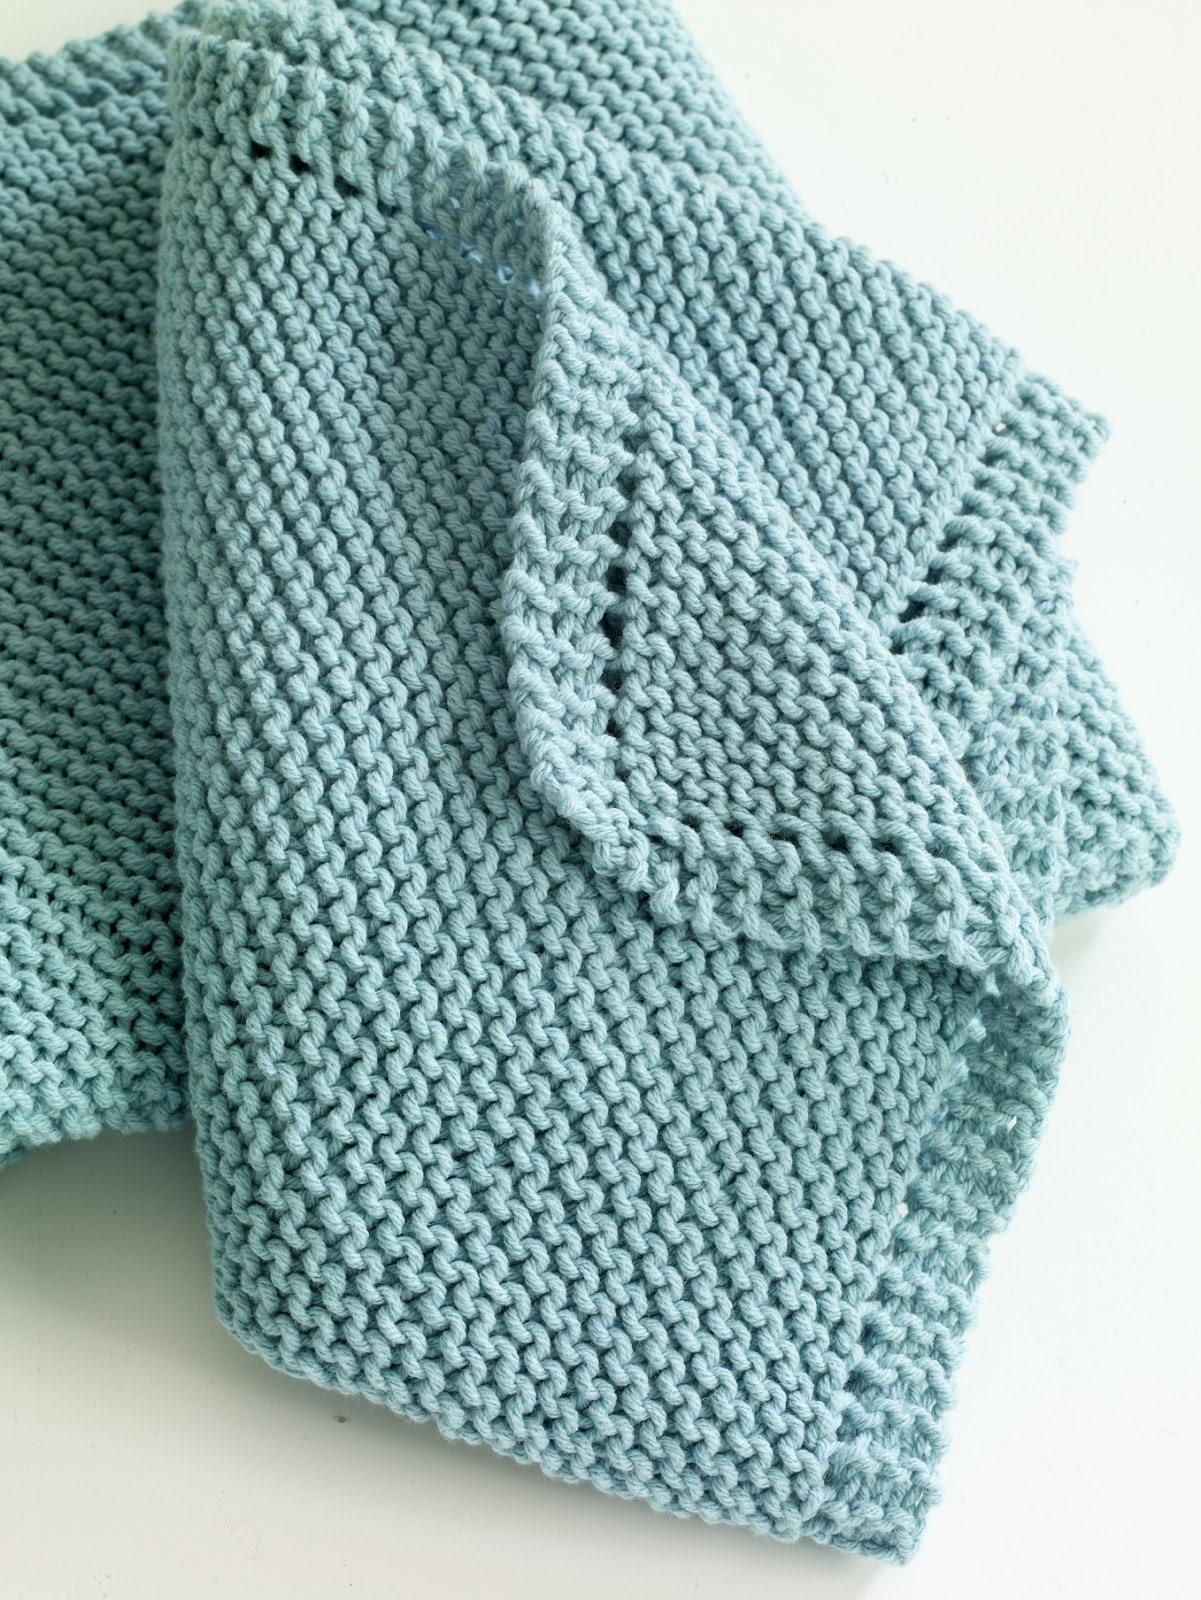 Free Blanket Knitting Patterns For Babies : Serenity Knits